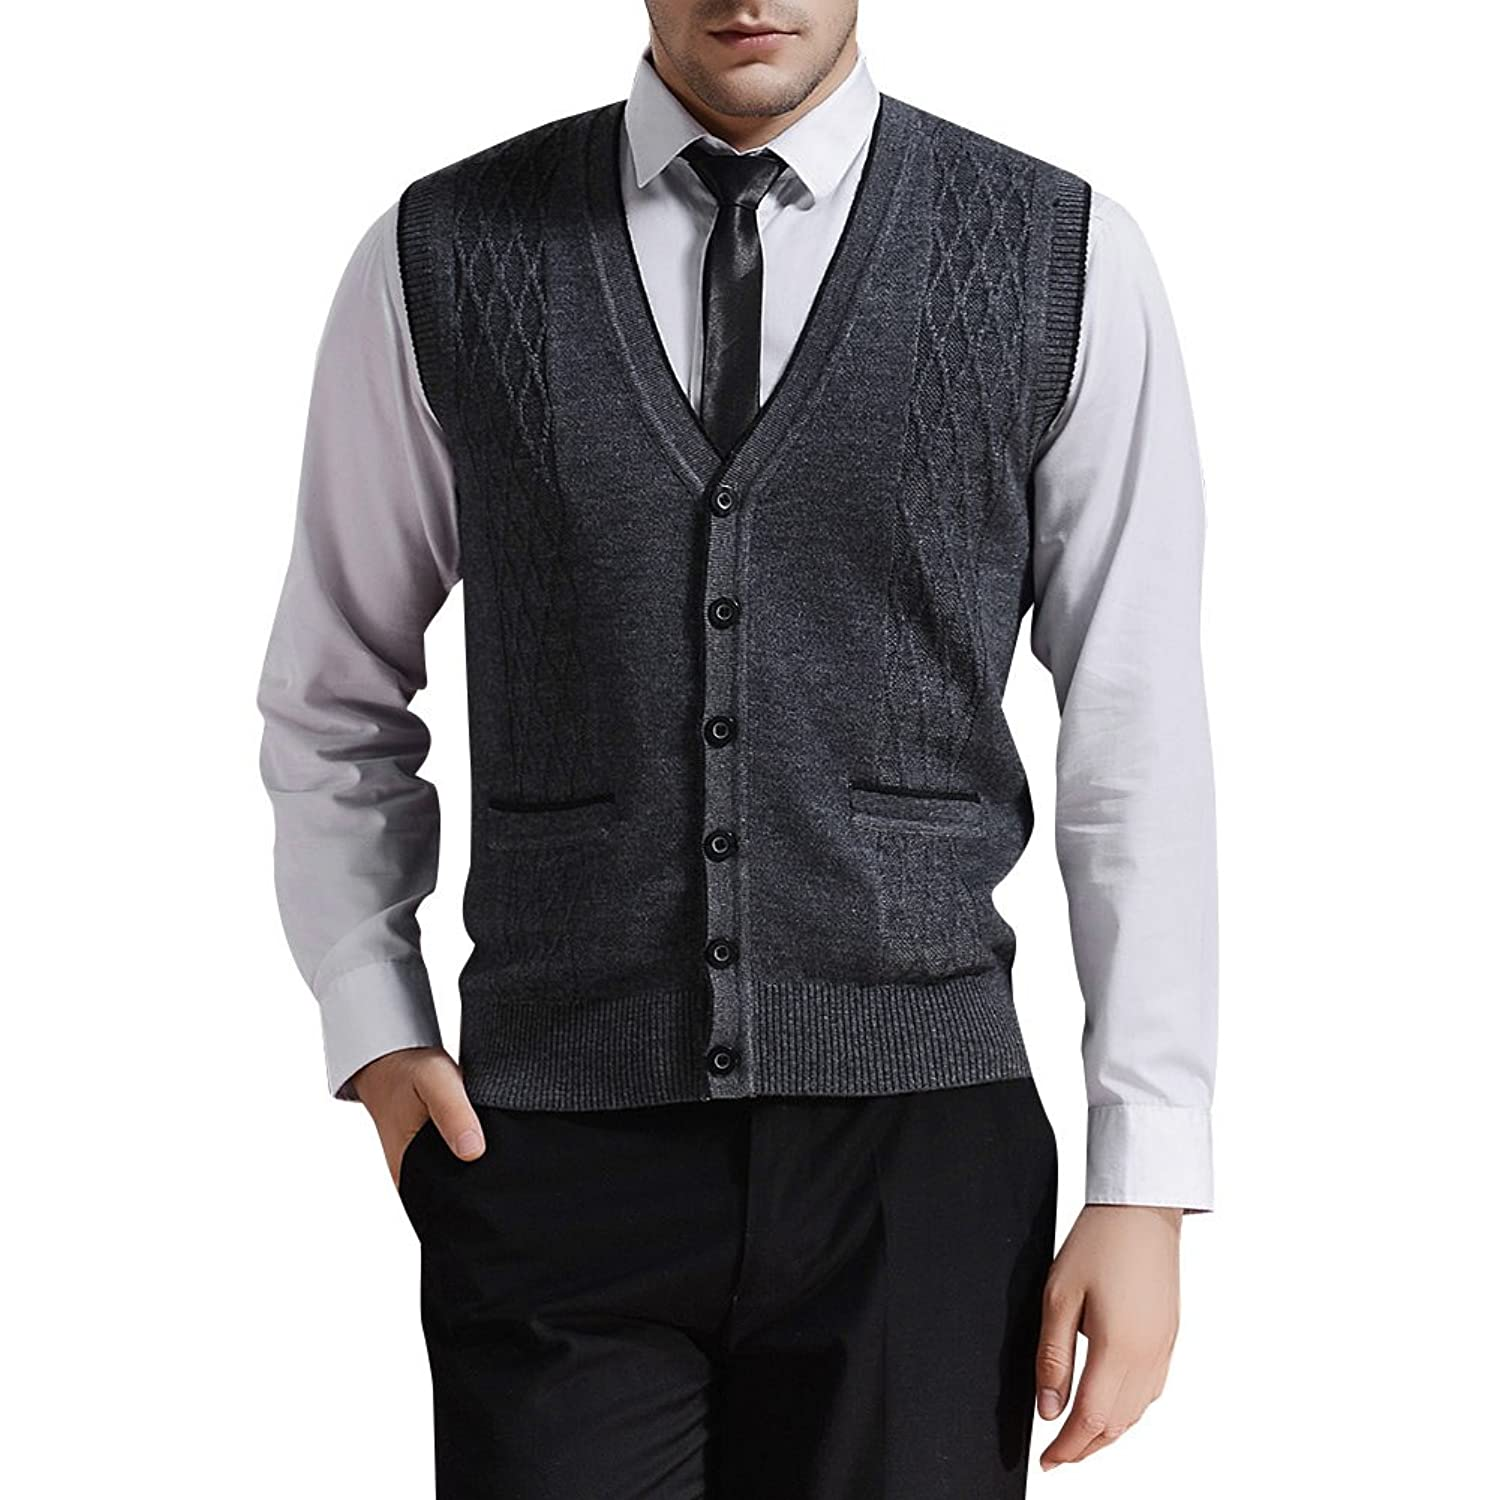 WoolOvers Mens Lambswool Knitted Waistcoat: Amazon.co.uk: Clothing